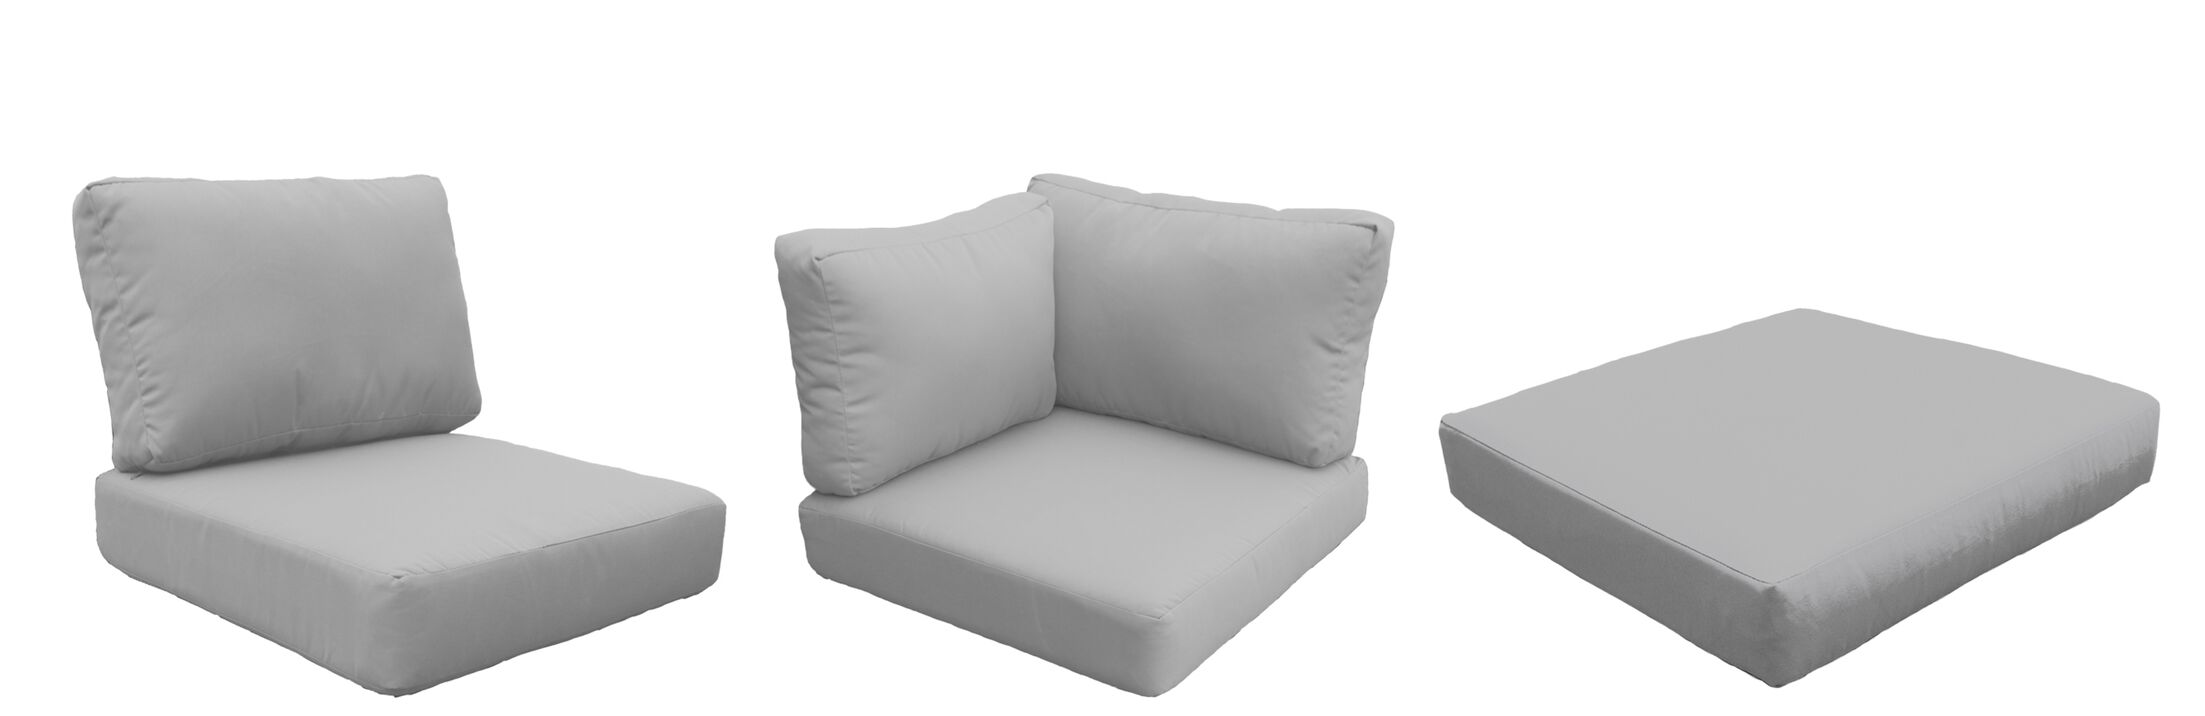 Coast Outdoor Replacement Cushion Set Fabric: Gray